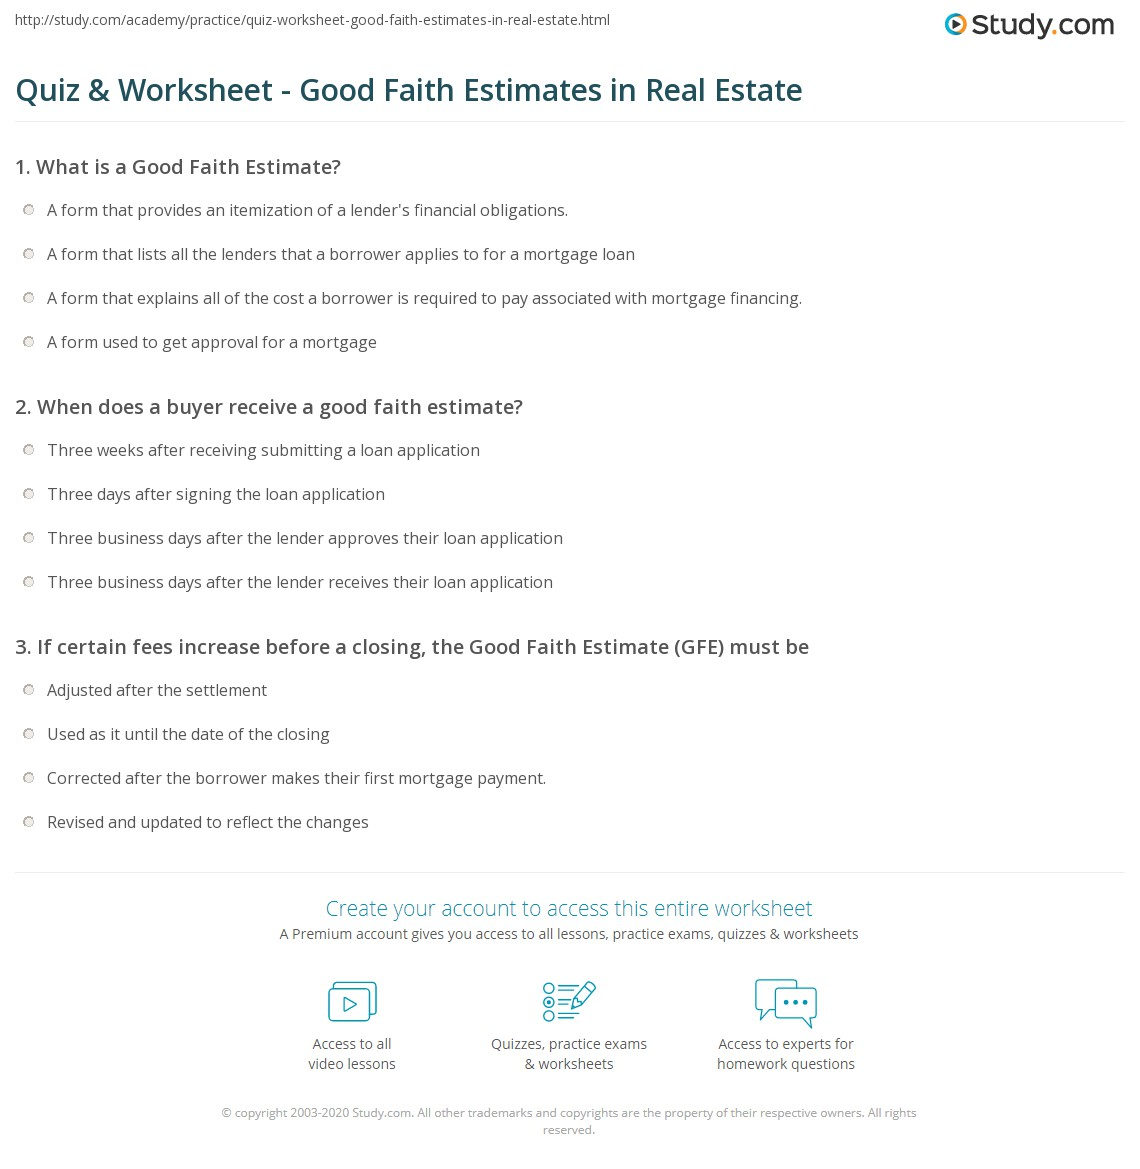 Worksheets Good Faith Estimate Worksheet quiz worksheet good faith estimates in real estate study com print what is a estimate definition components worksheet